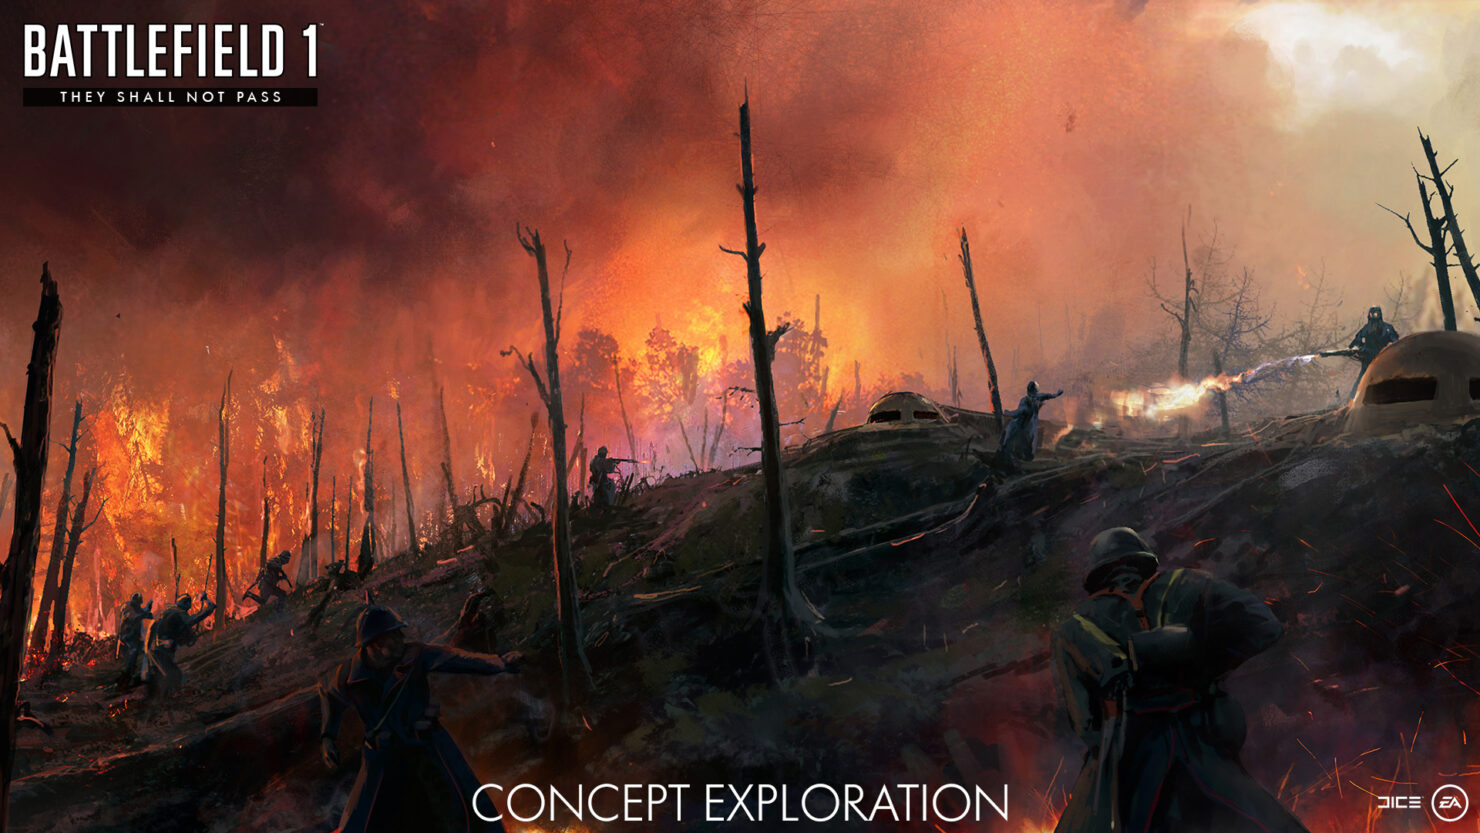 battlefield 1 expansion they shall not pass art2